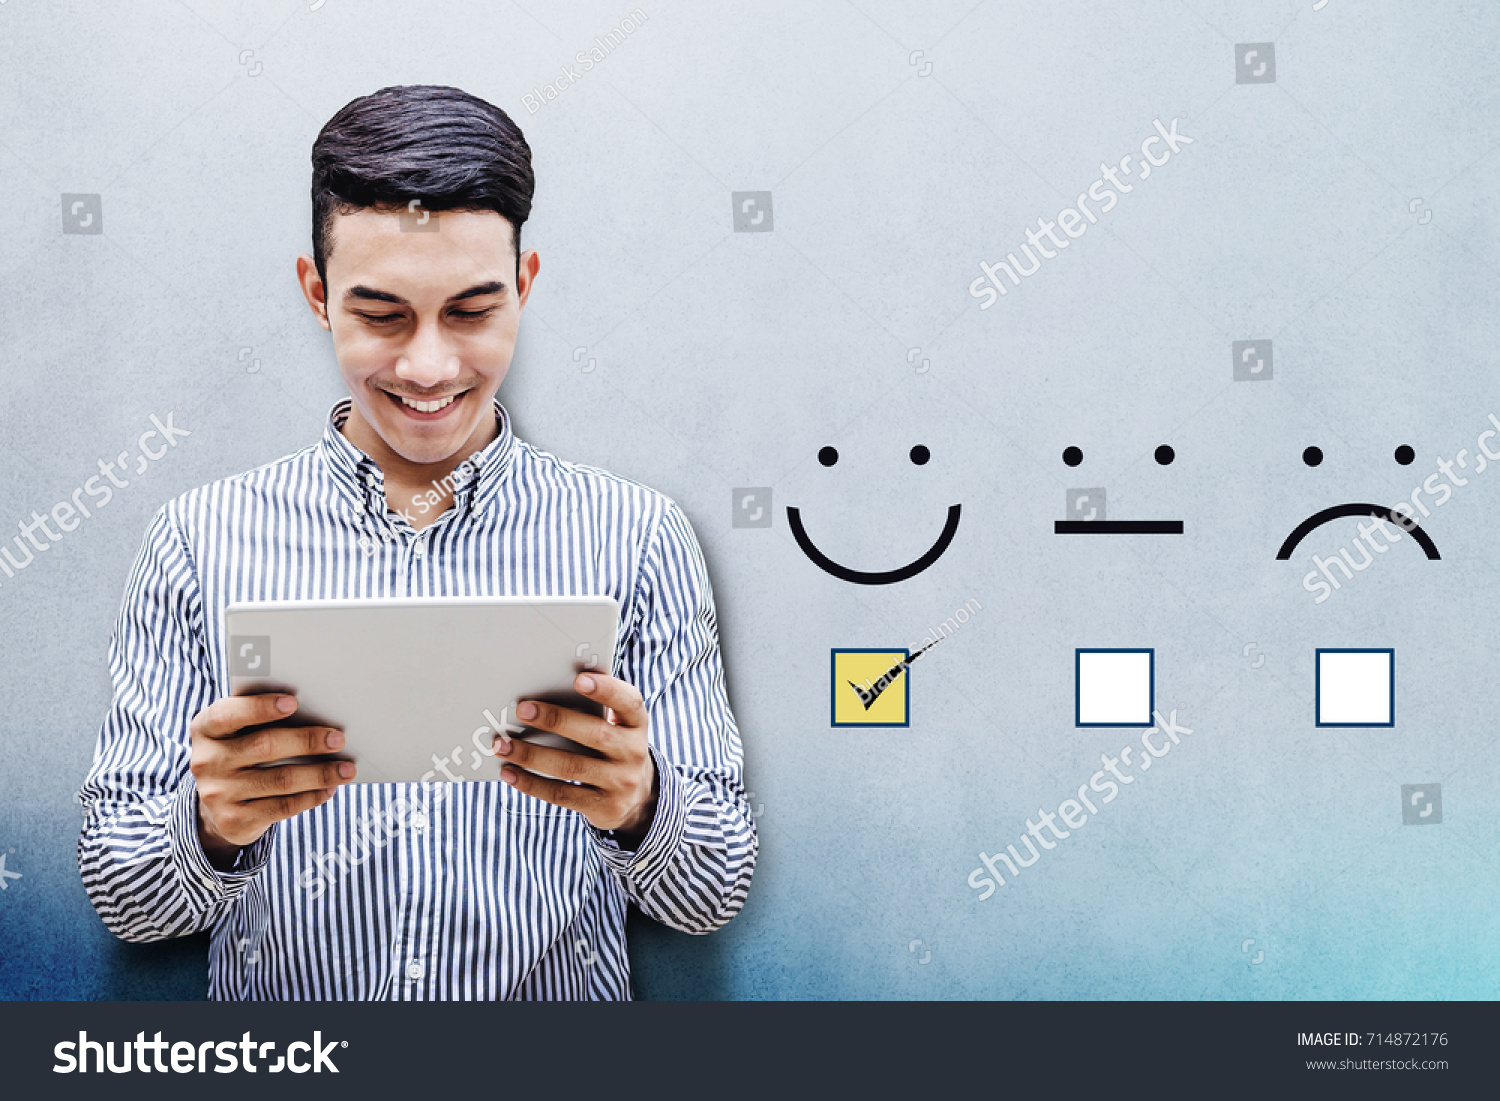 Customer Experience Concept, Happy Businessman holding digital Tablet with a checked box on Excellent Smiley Face Rating for a Satisfaction Survey #714872176